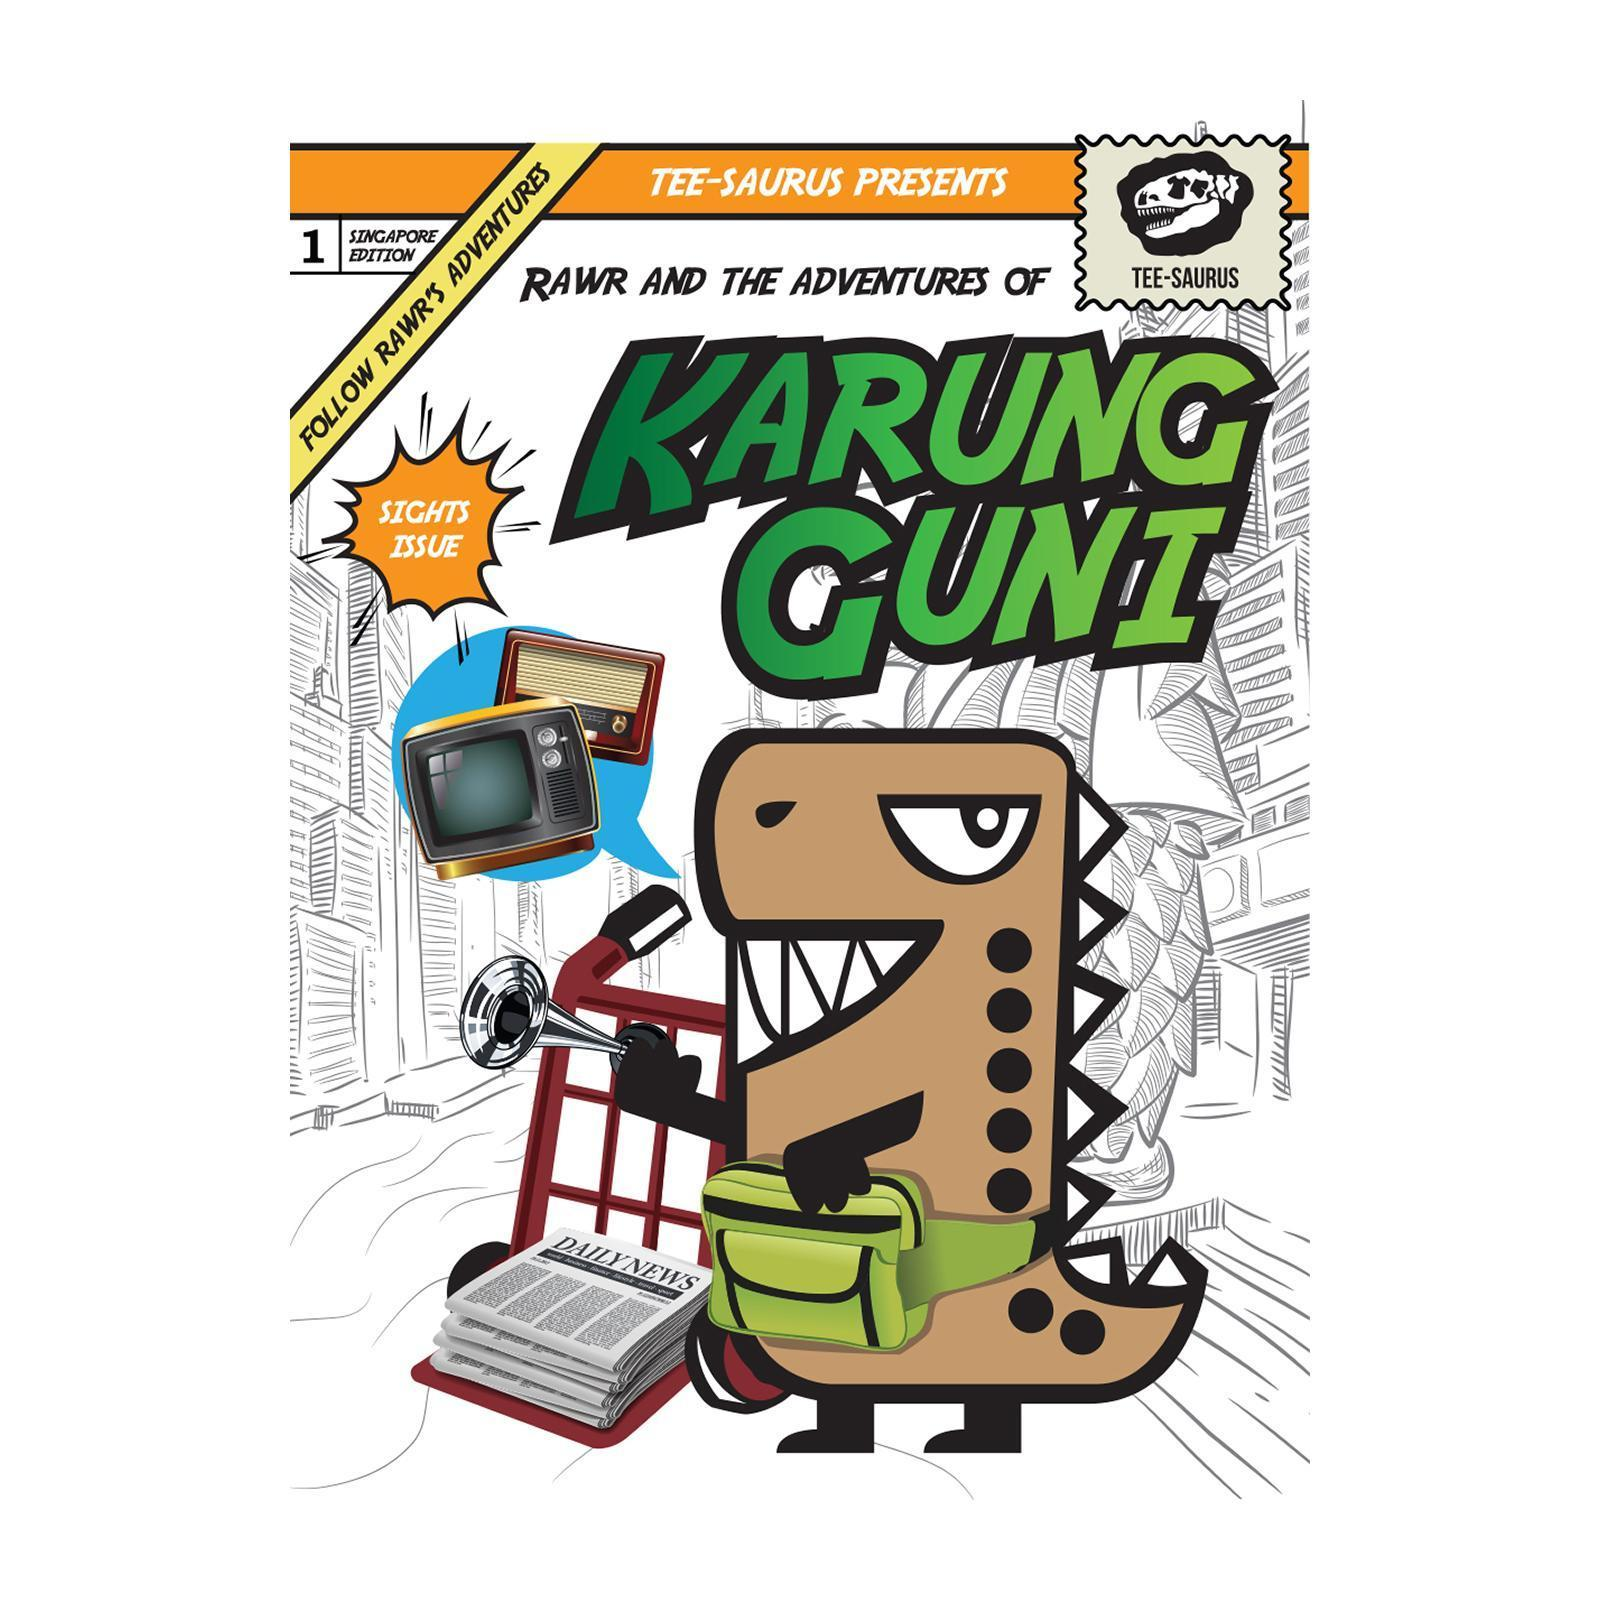 Rawr Around Singapore Postcard - Karang Guni Postcards Tee-saurus